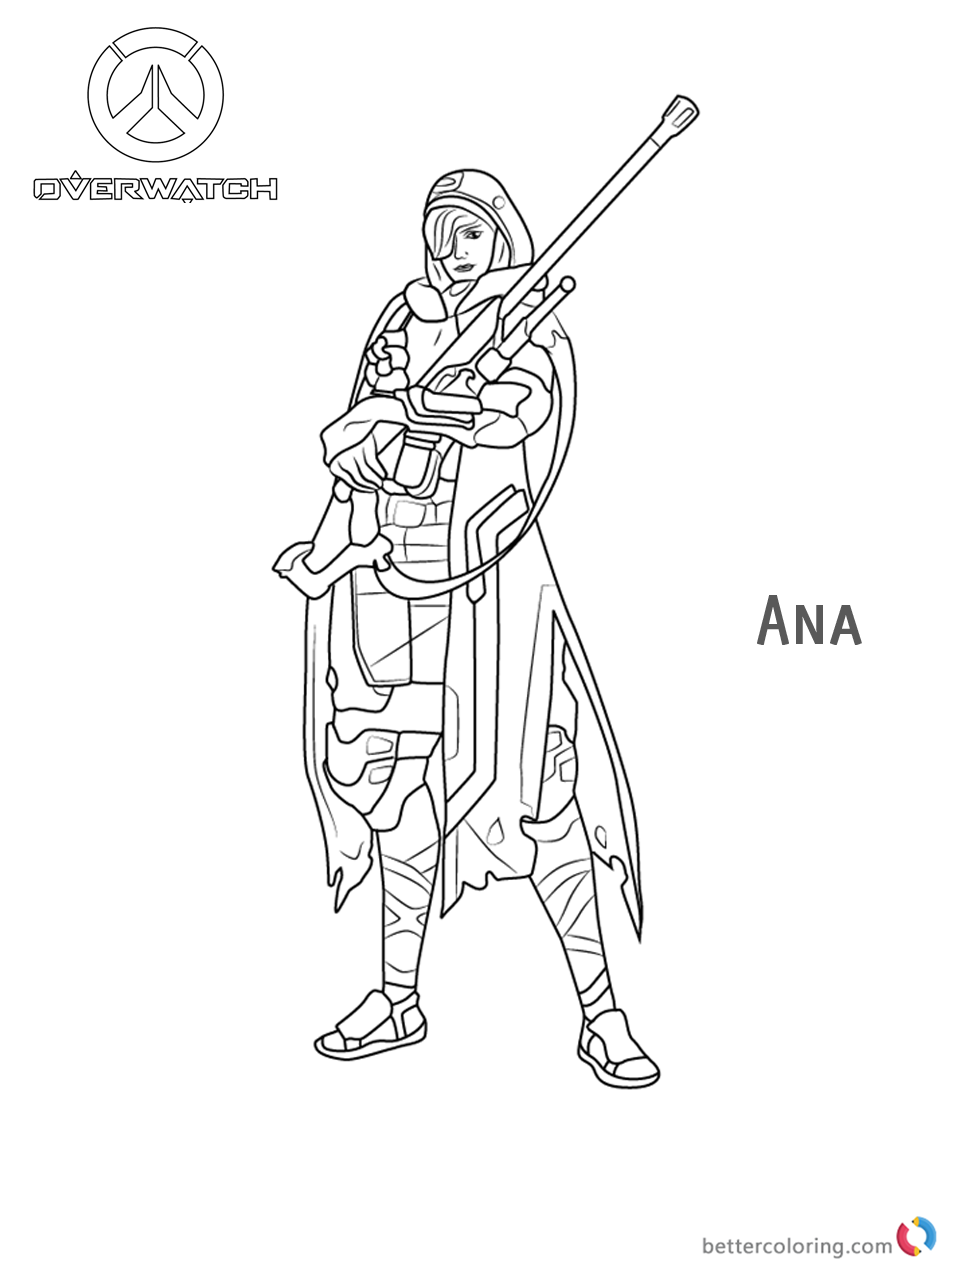 Ana from Overwatch Coloring Pages